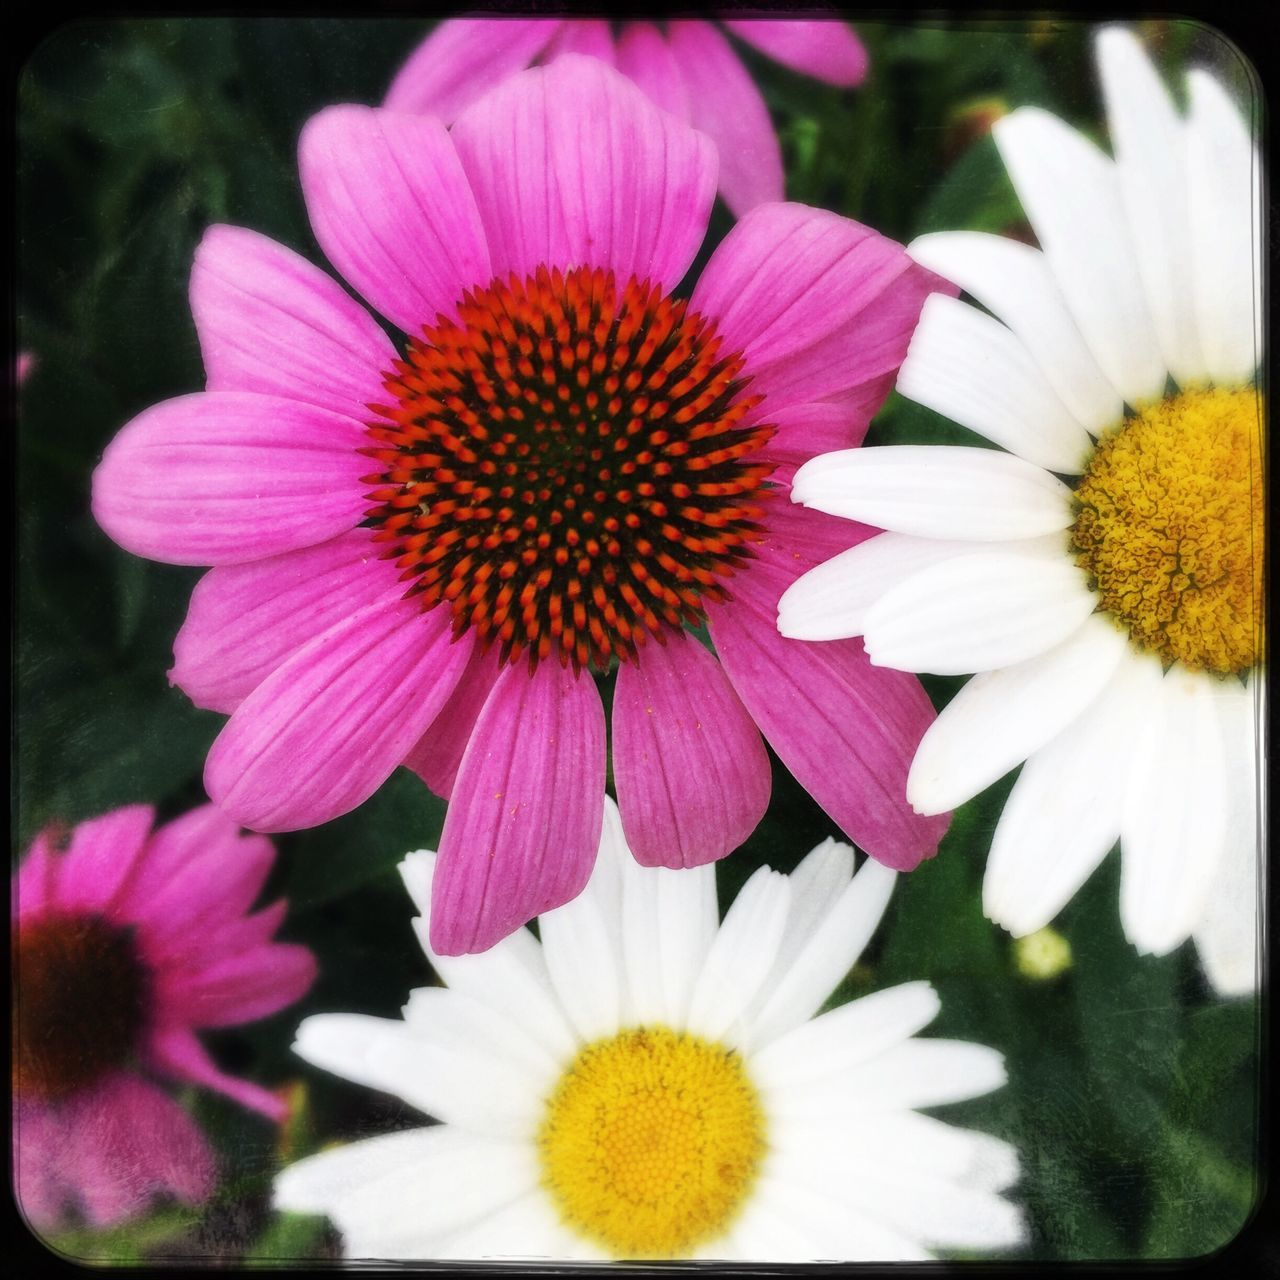 flower, petal, fragility, beauty in nature, flower head, freshness, nature, pollen, blooming, growth, no people, plant, close-up, yellow, day, outdoors, osteospermum, eastern purple coneflower